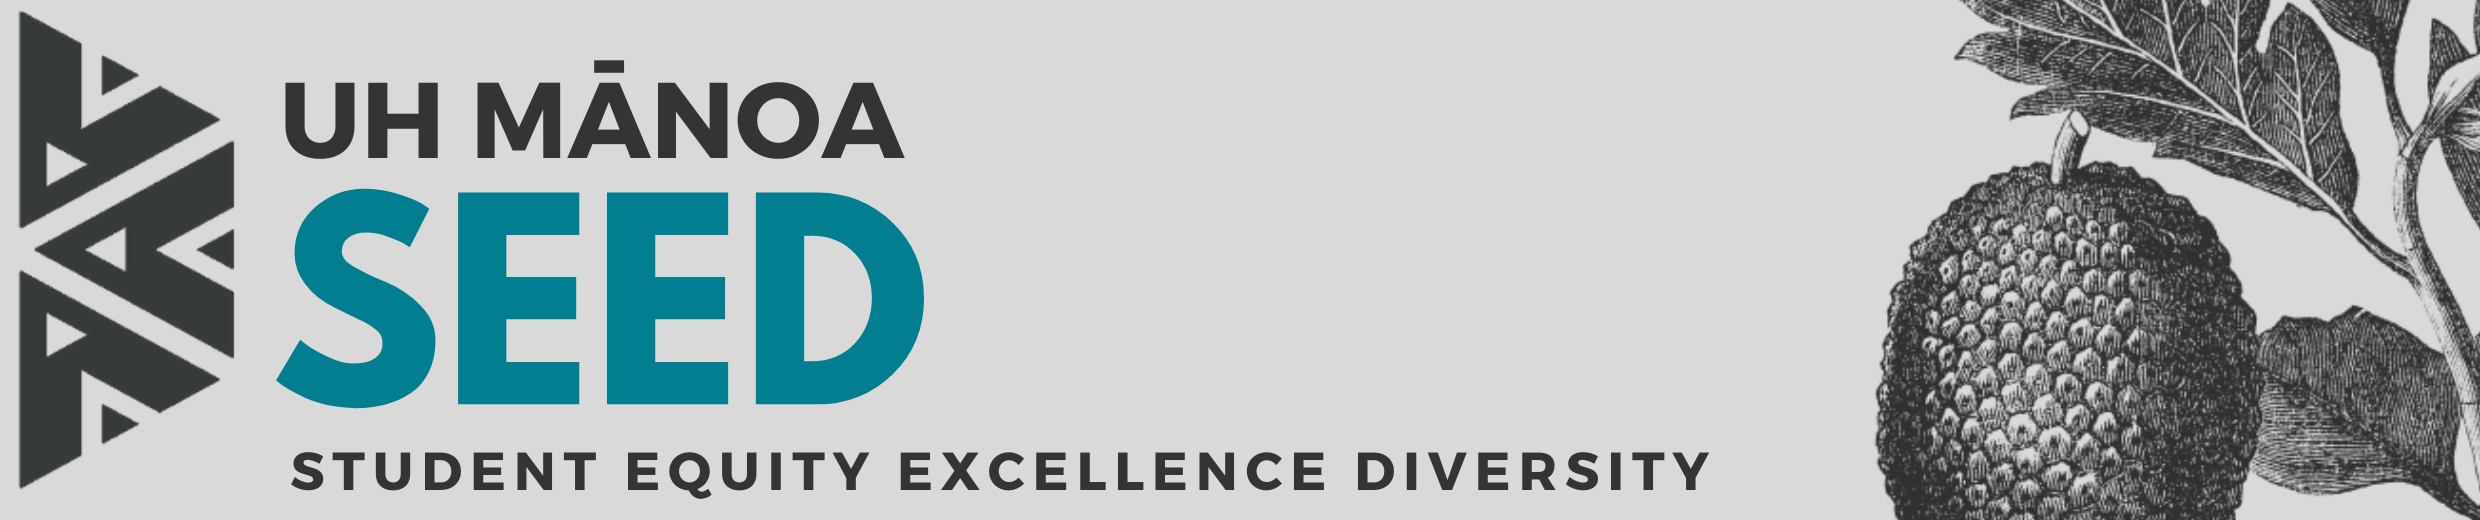 Student Equity Excellence Diversity (SEED)